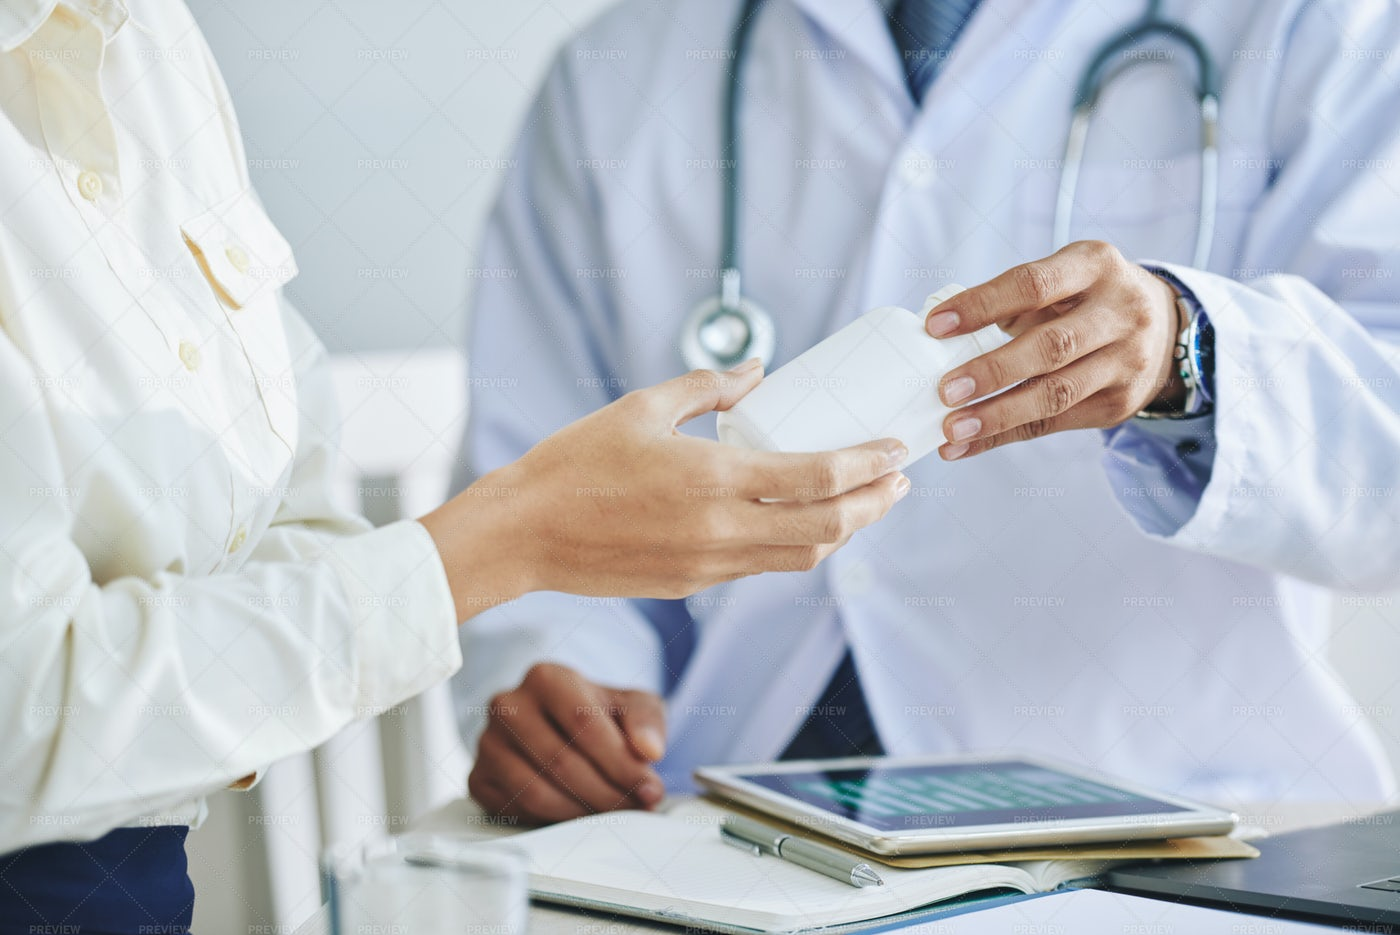 Doctor Giving Medicine To Patient: Stock Photos